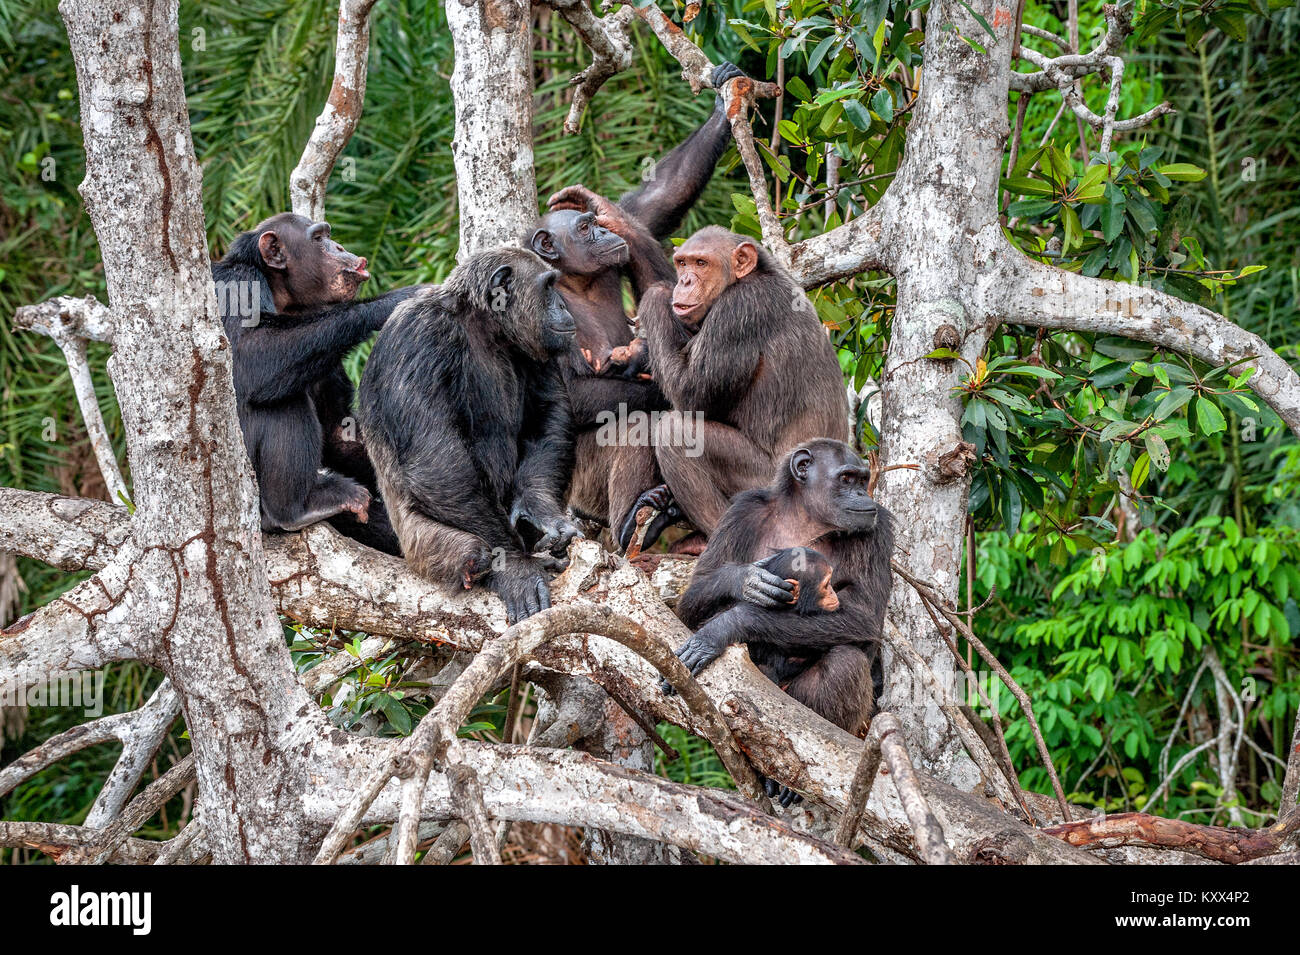 an analysis of the aids from chimpanzees Chimpanzees in research once hailed the key for a cure to aids which continues to kill millions despite the large number of chimpanzees that have been harmed by hiv/aids.